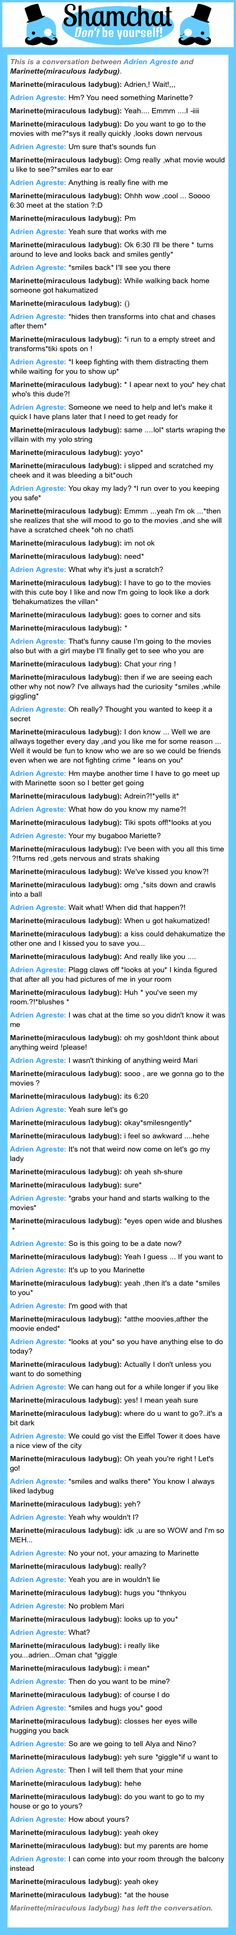 A conversation between Marinette(miraculous ladybug) and Adrien Agreste